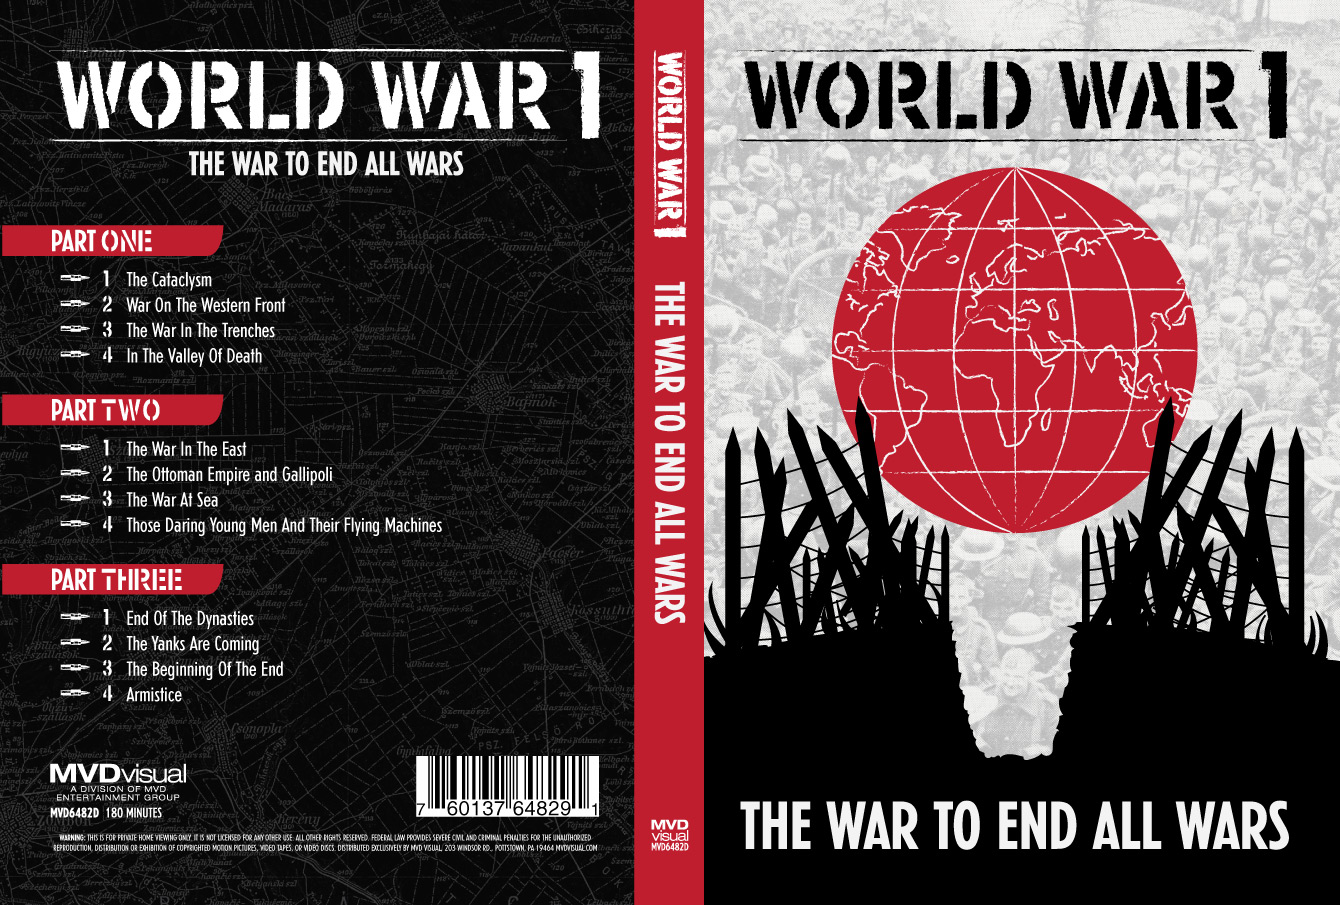 Design for World War I: The War To End All Wars